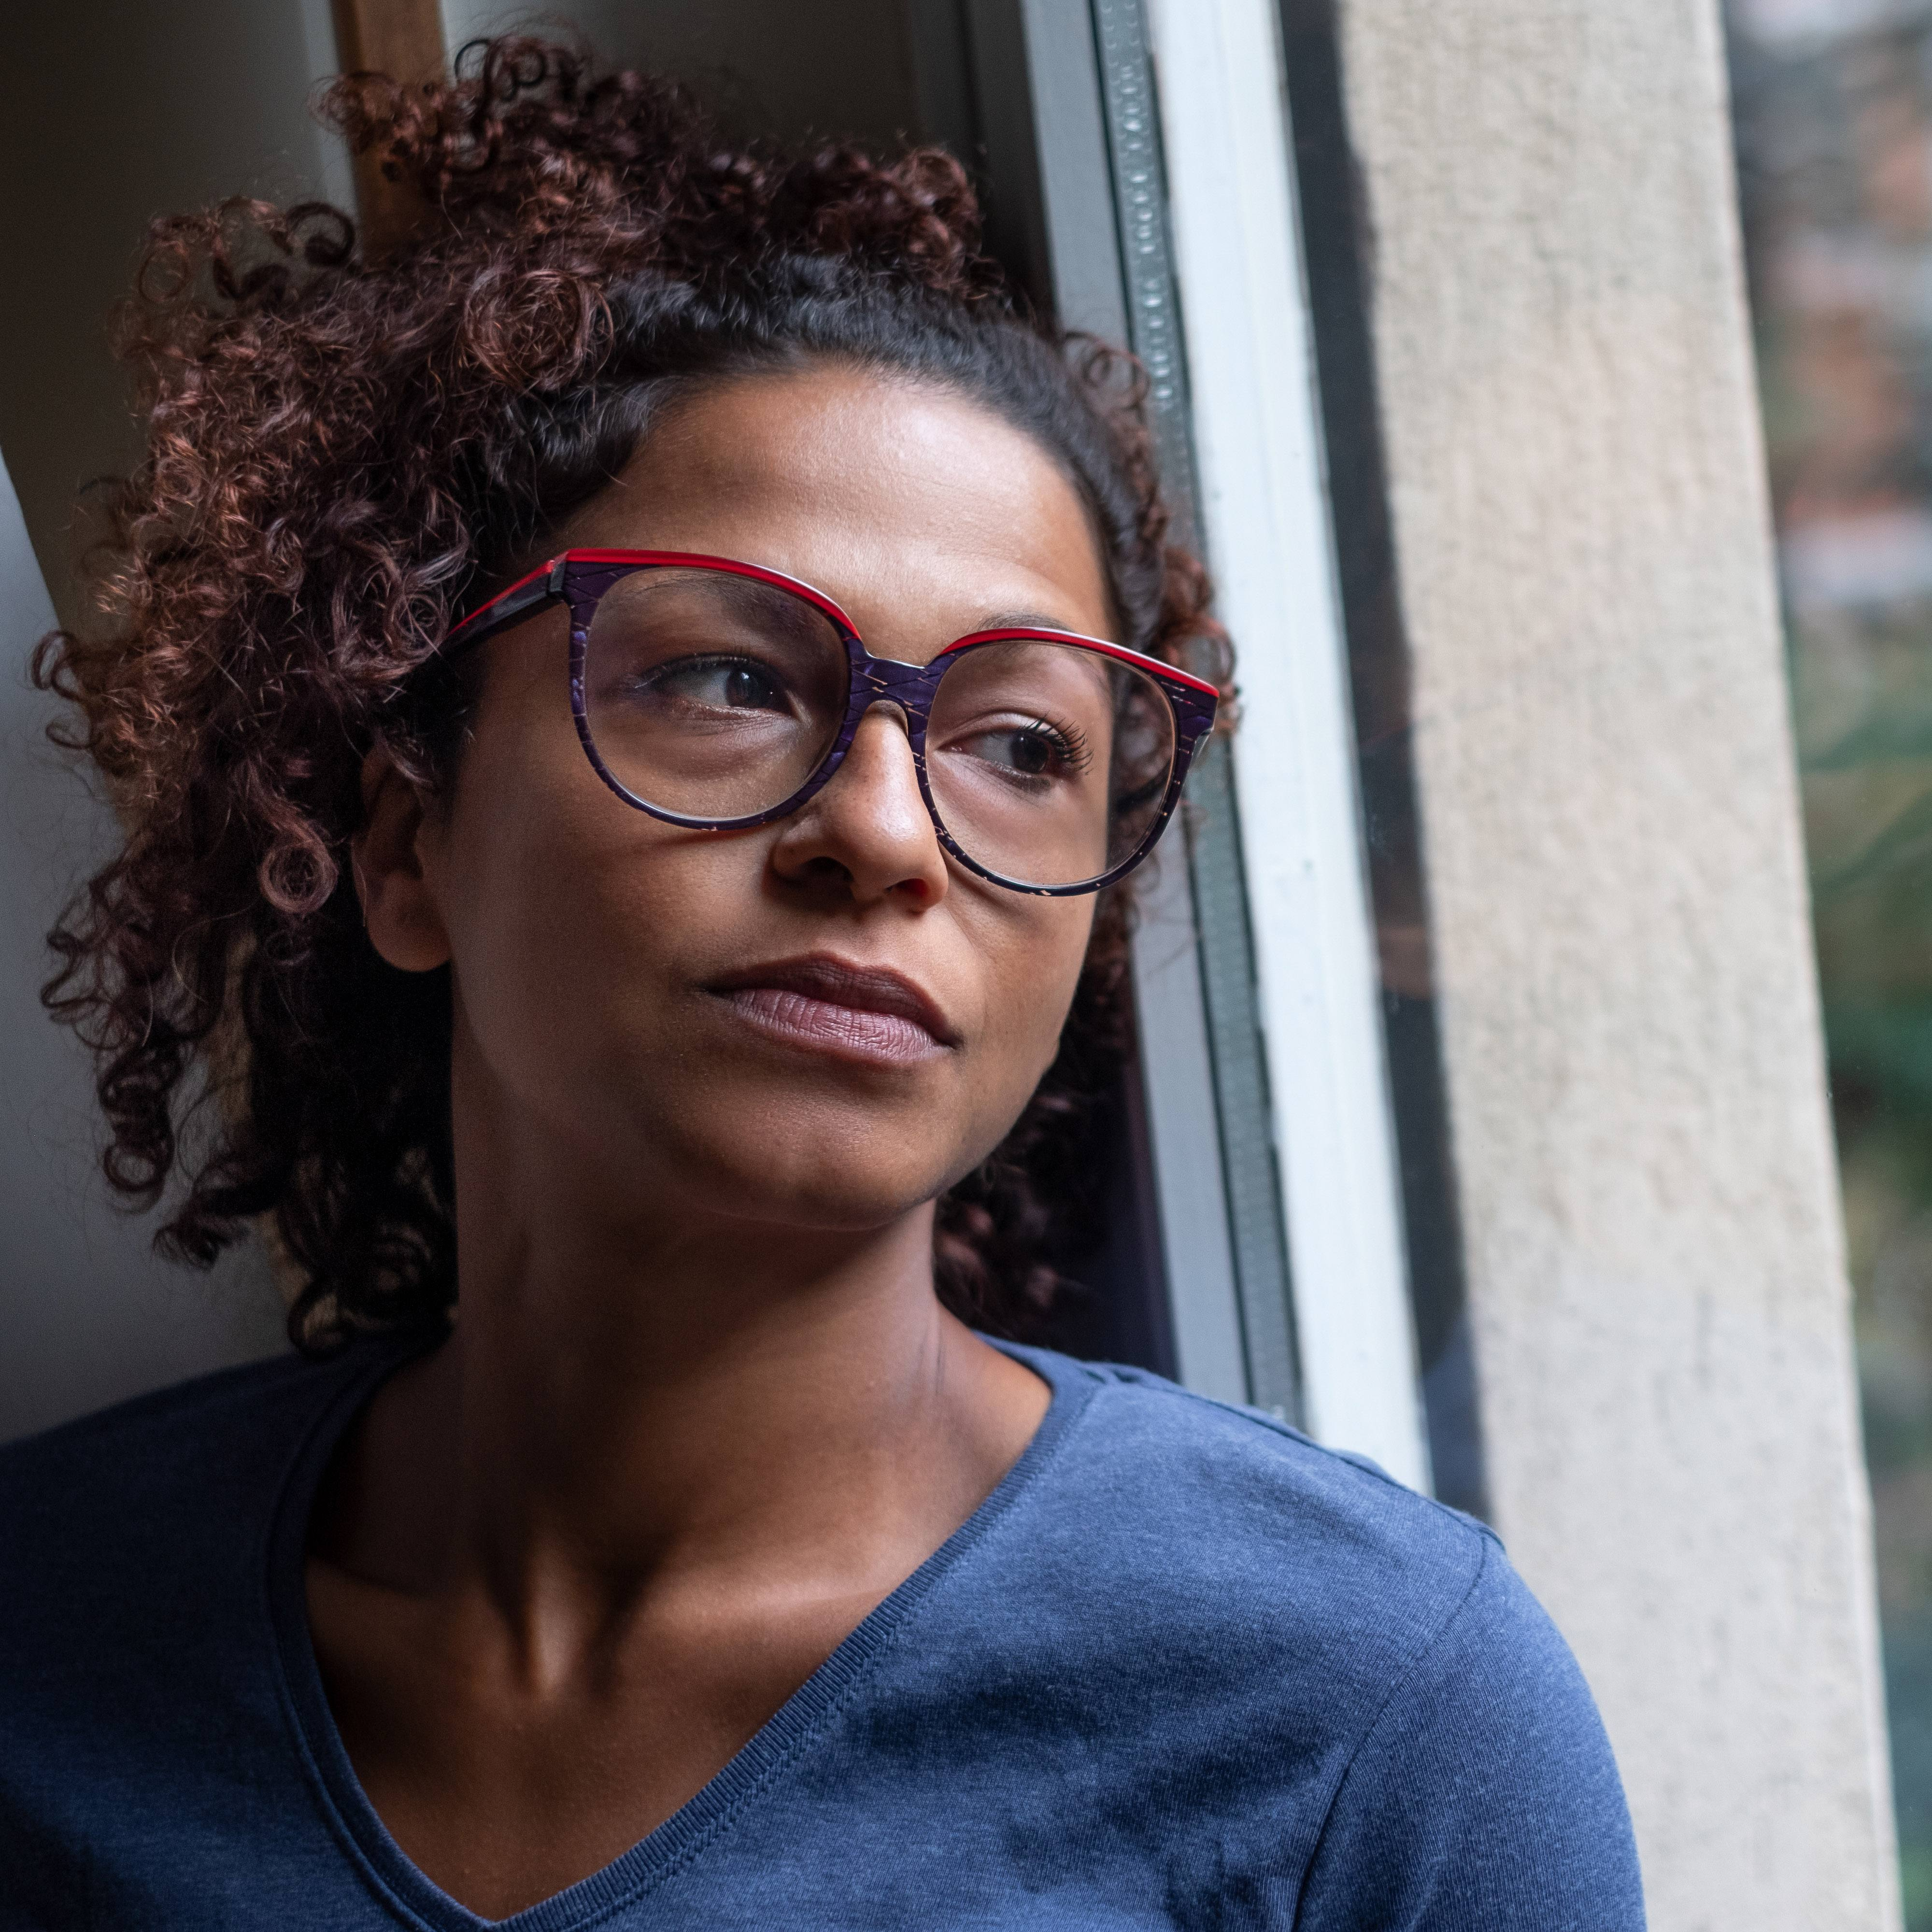 portrait of a middle-aged woman standing near a window, looking sad, depressed, lonely